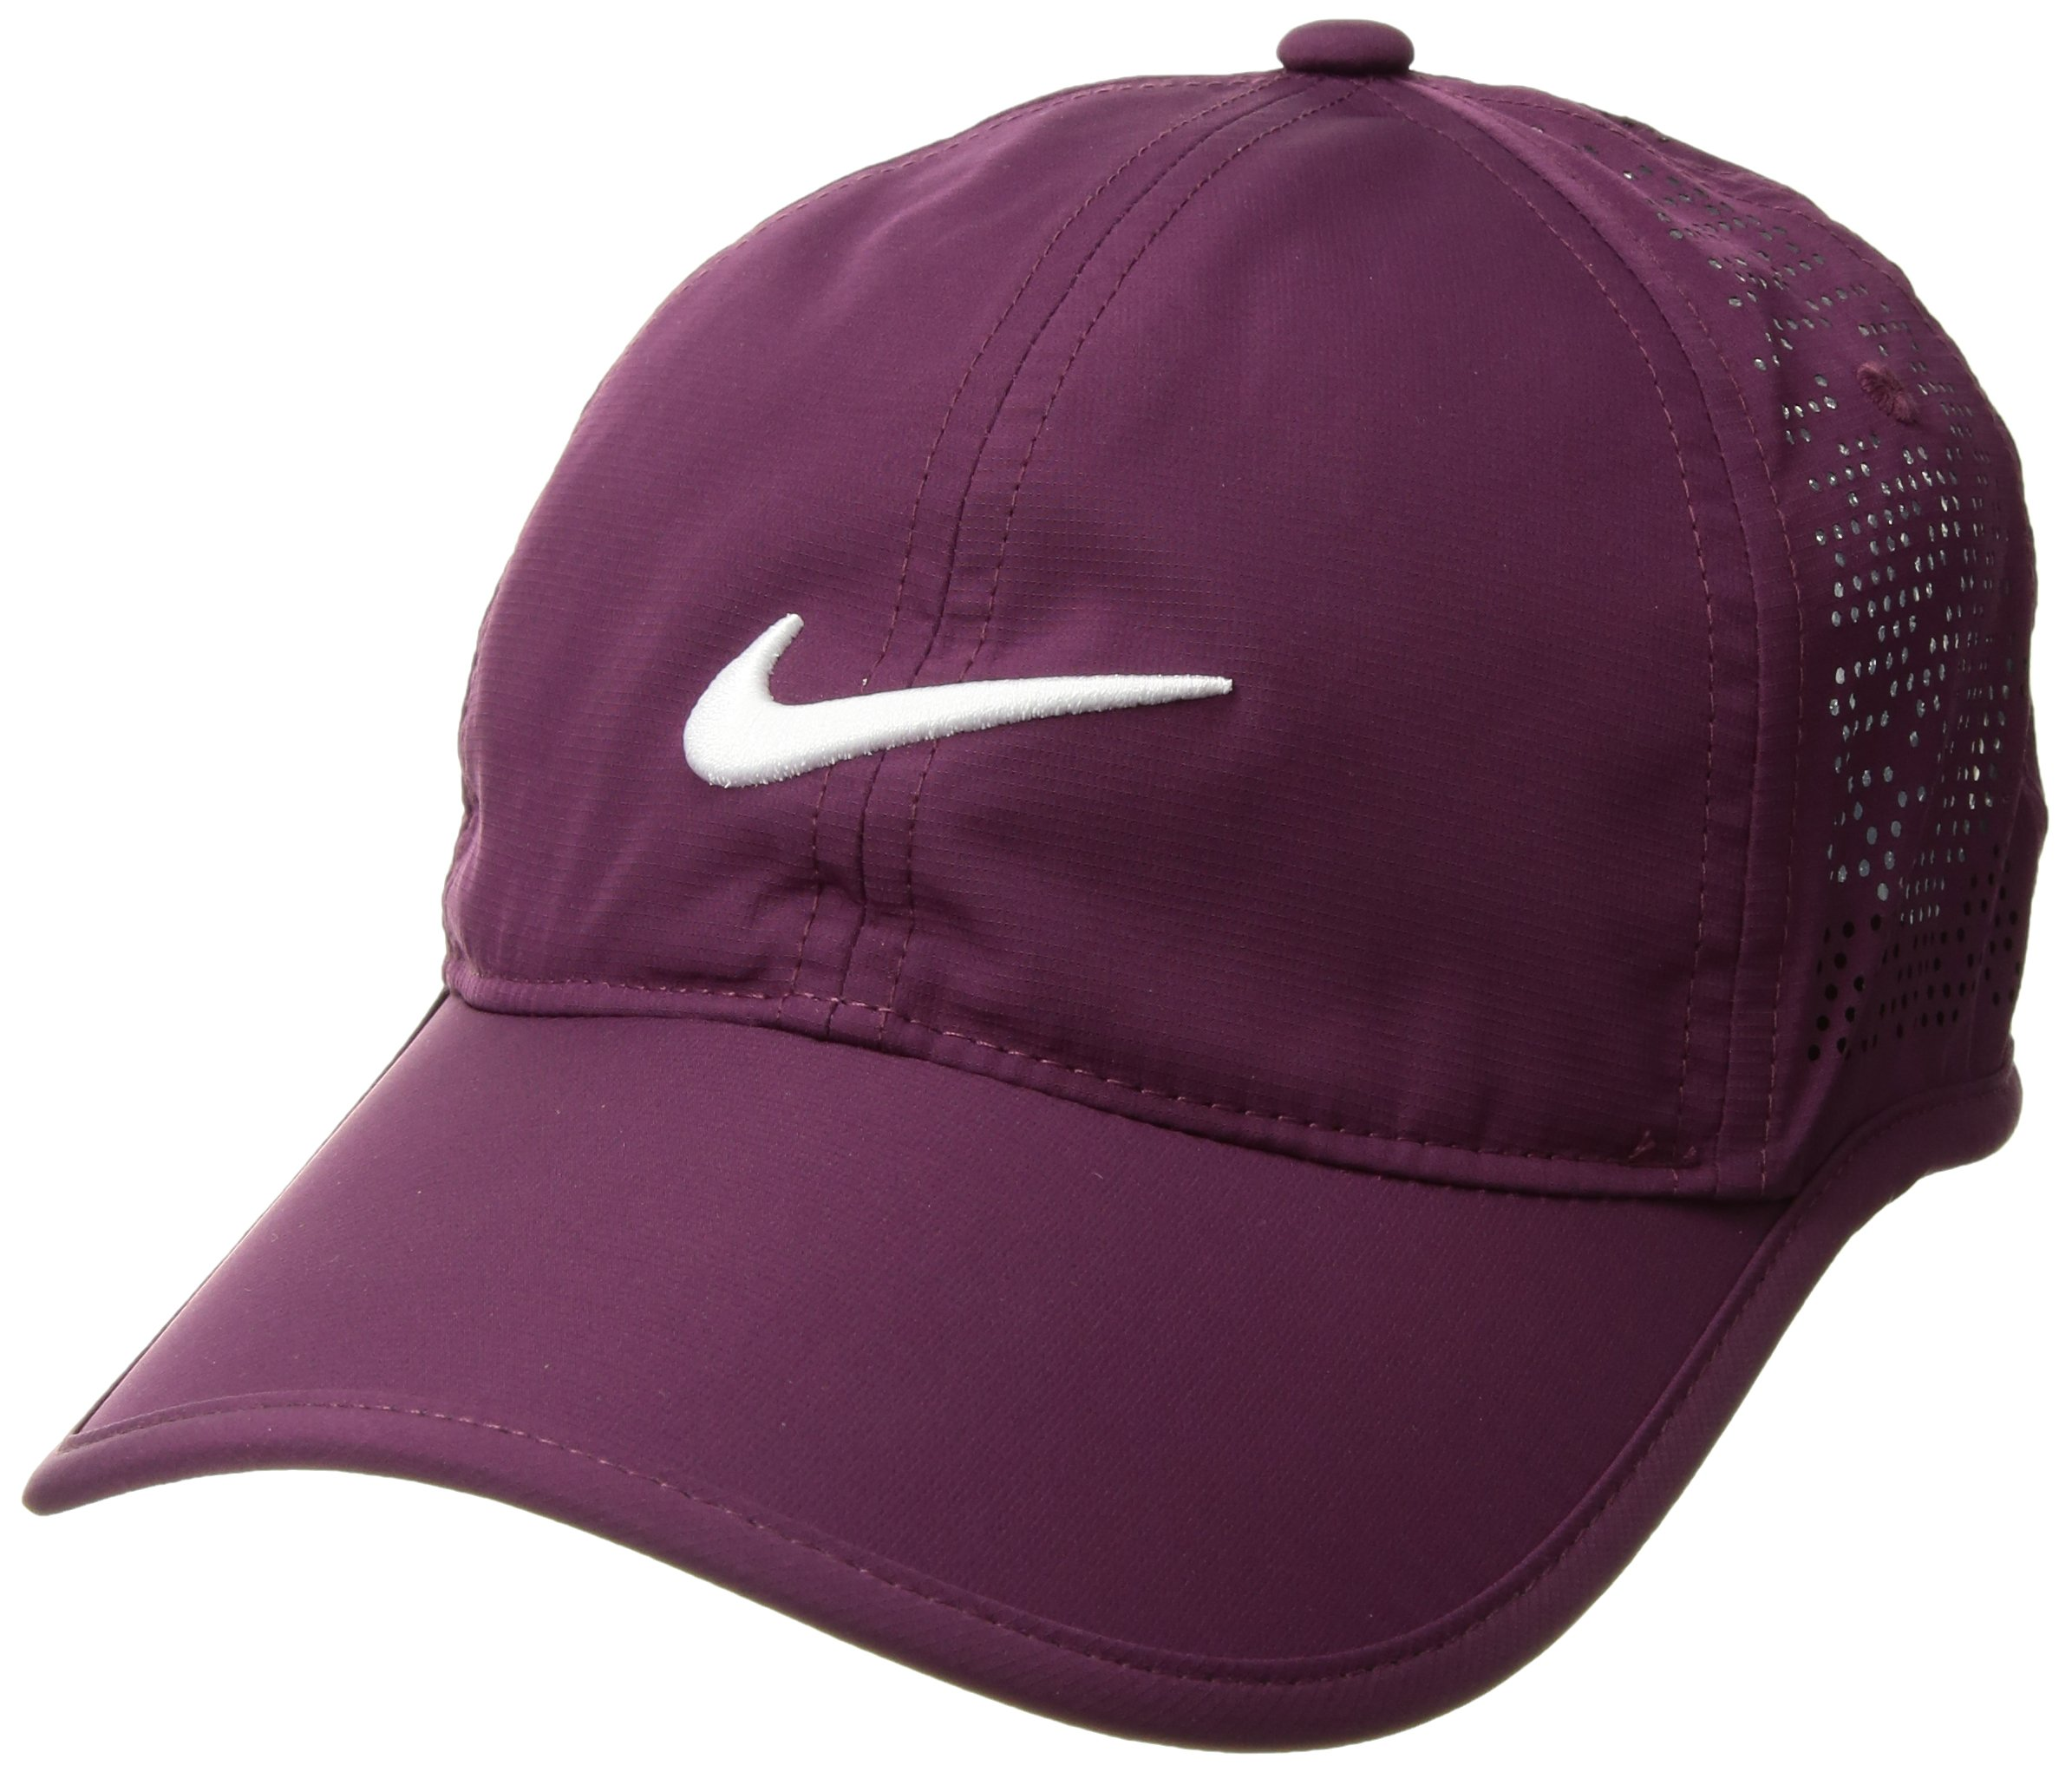 6b416a7e2a3 NIKE Women s Perforated Hat - 742707-358-P   Caps   Sports ...